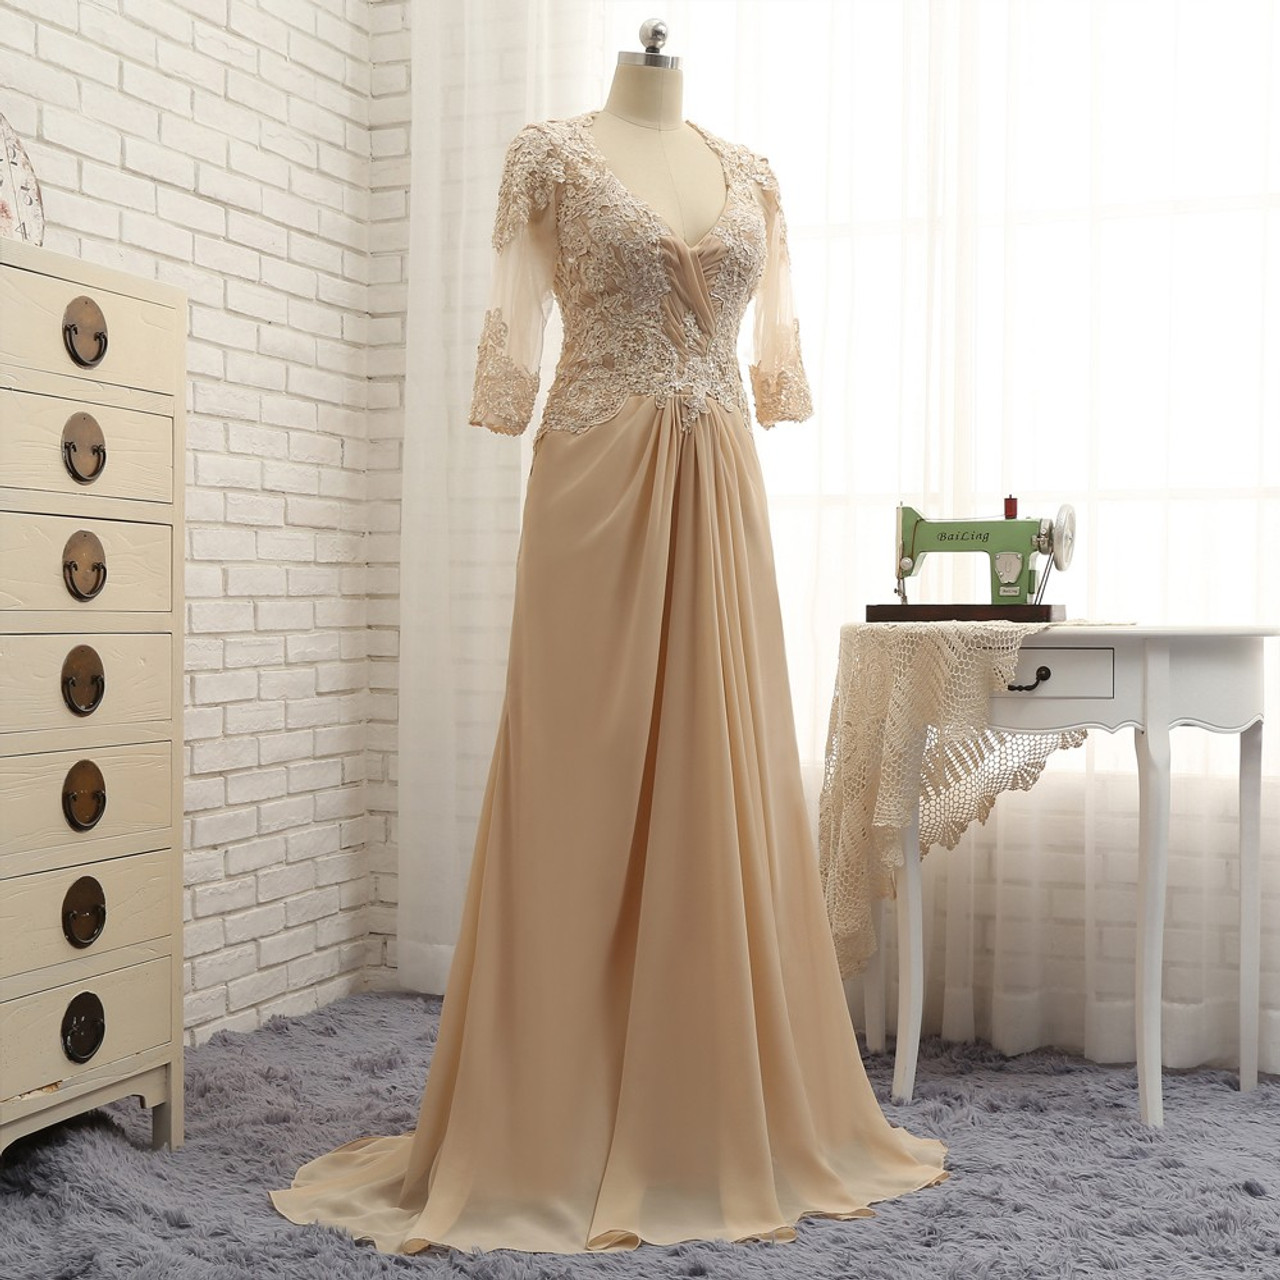 Mother Of The Bride Dresses 2017: Romance Champagne 2017 Mother Of The Bride Dresses A-line